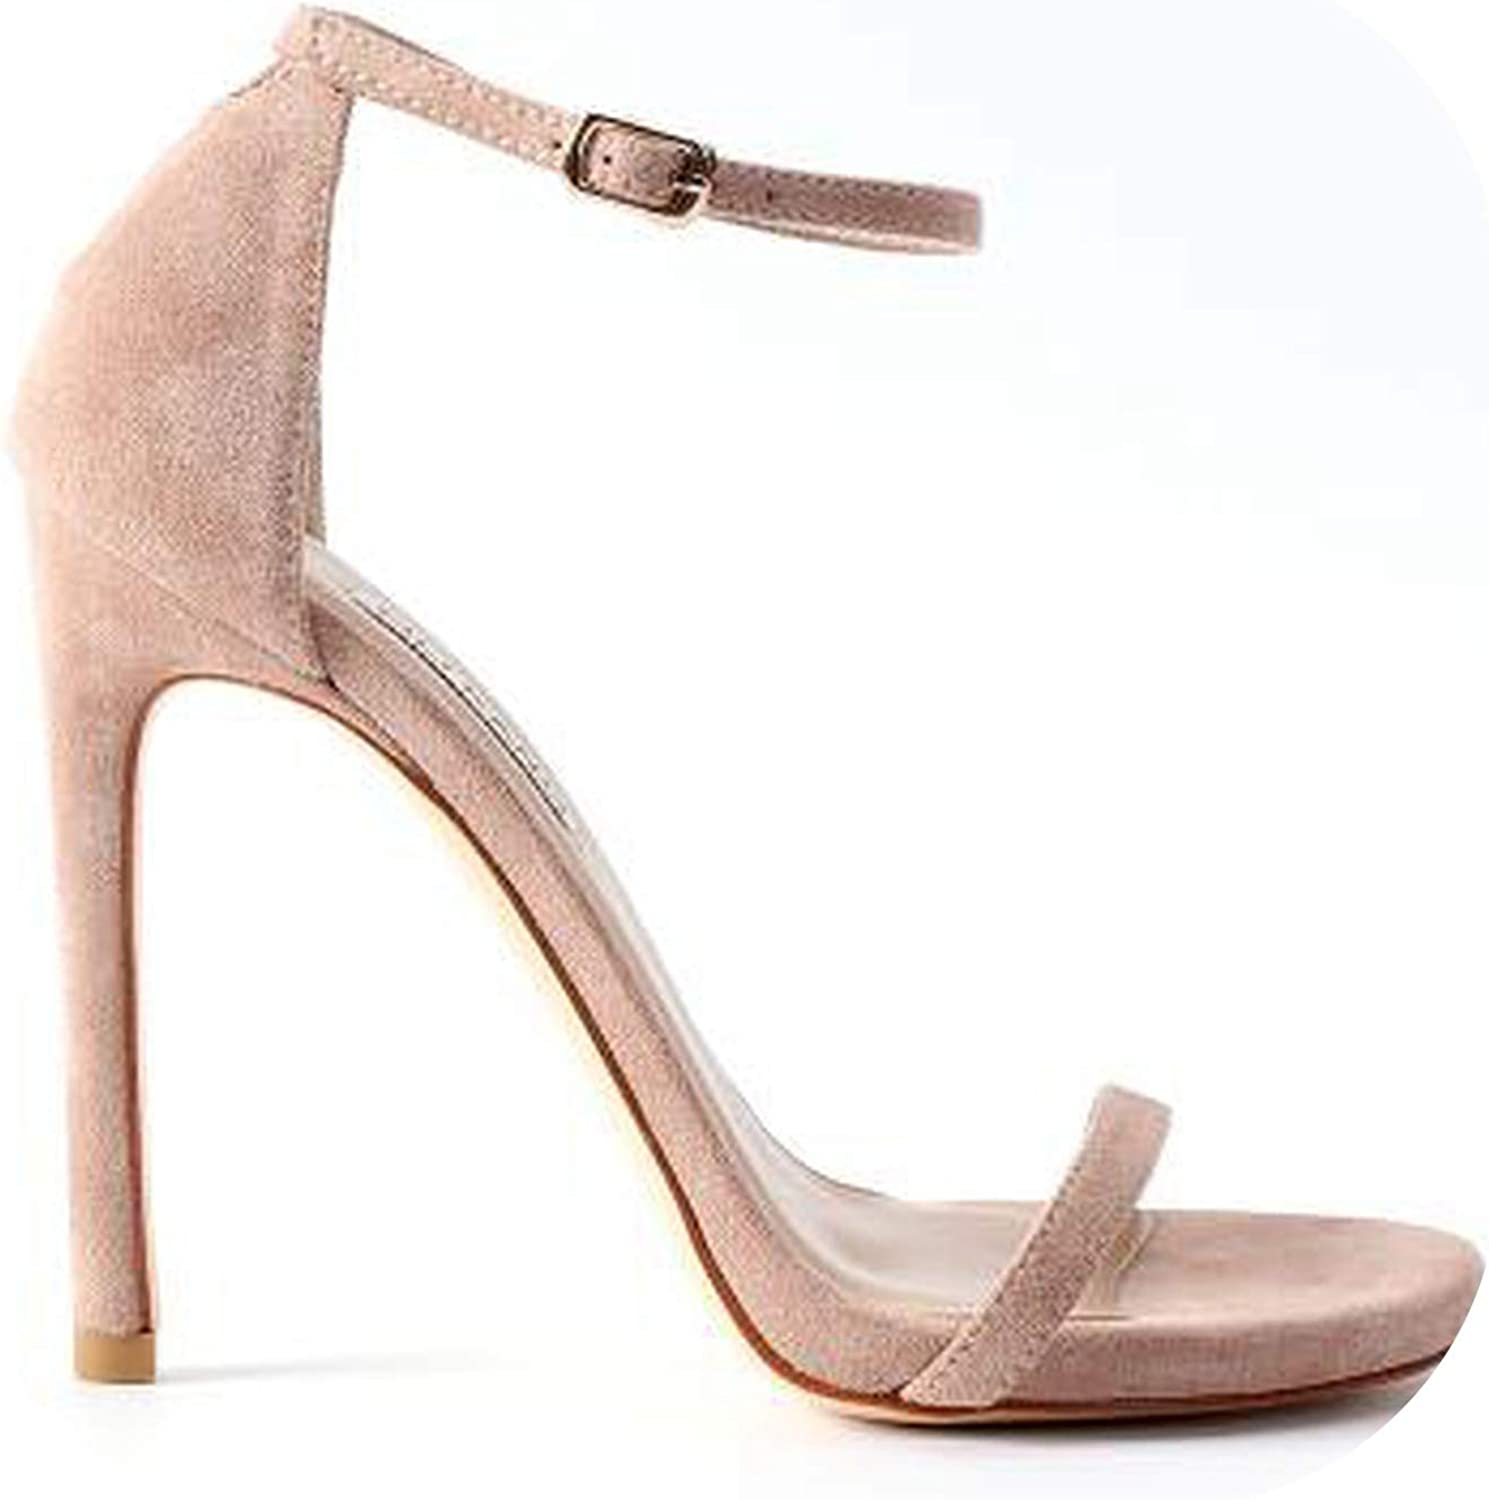 Genuine Leather Ankle Strap Heels Women Sandals Summer shoes Open Toe Chunky High Heels Ladies Sandals